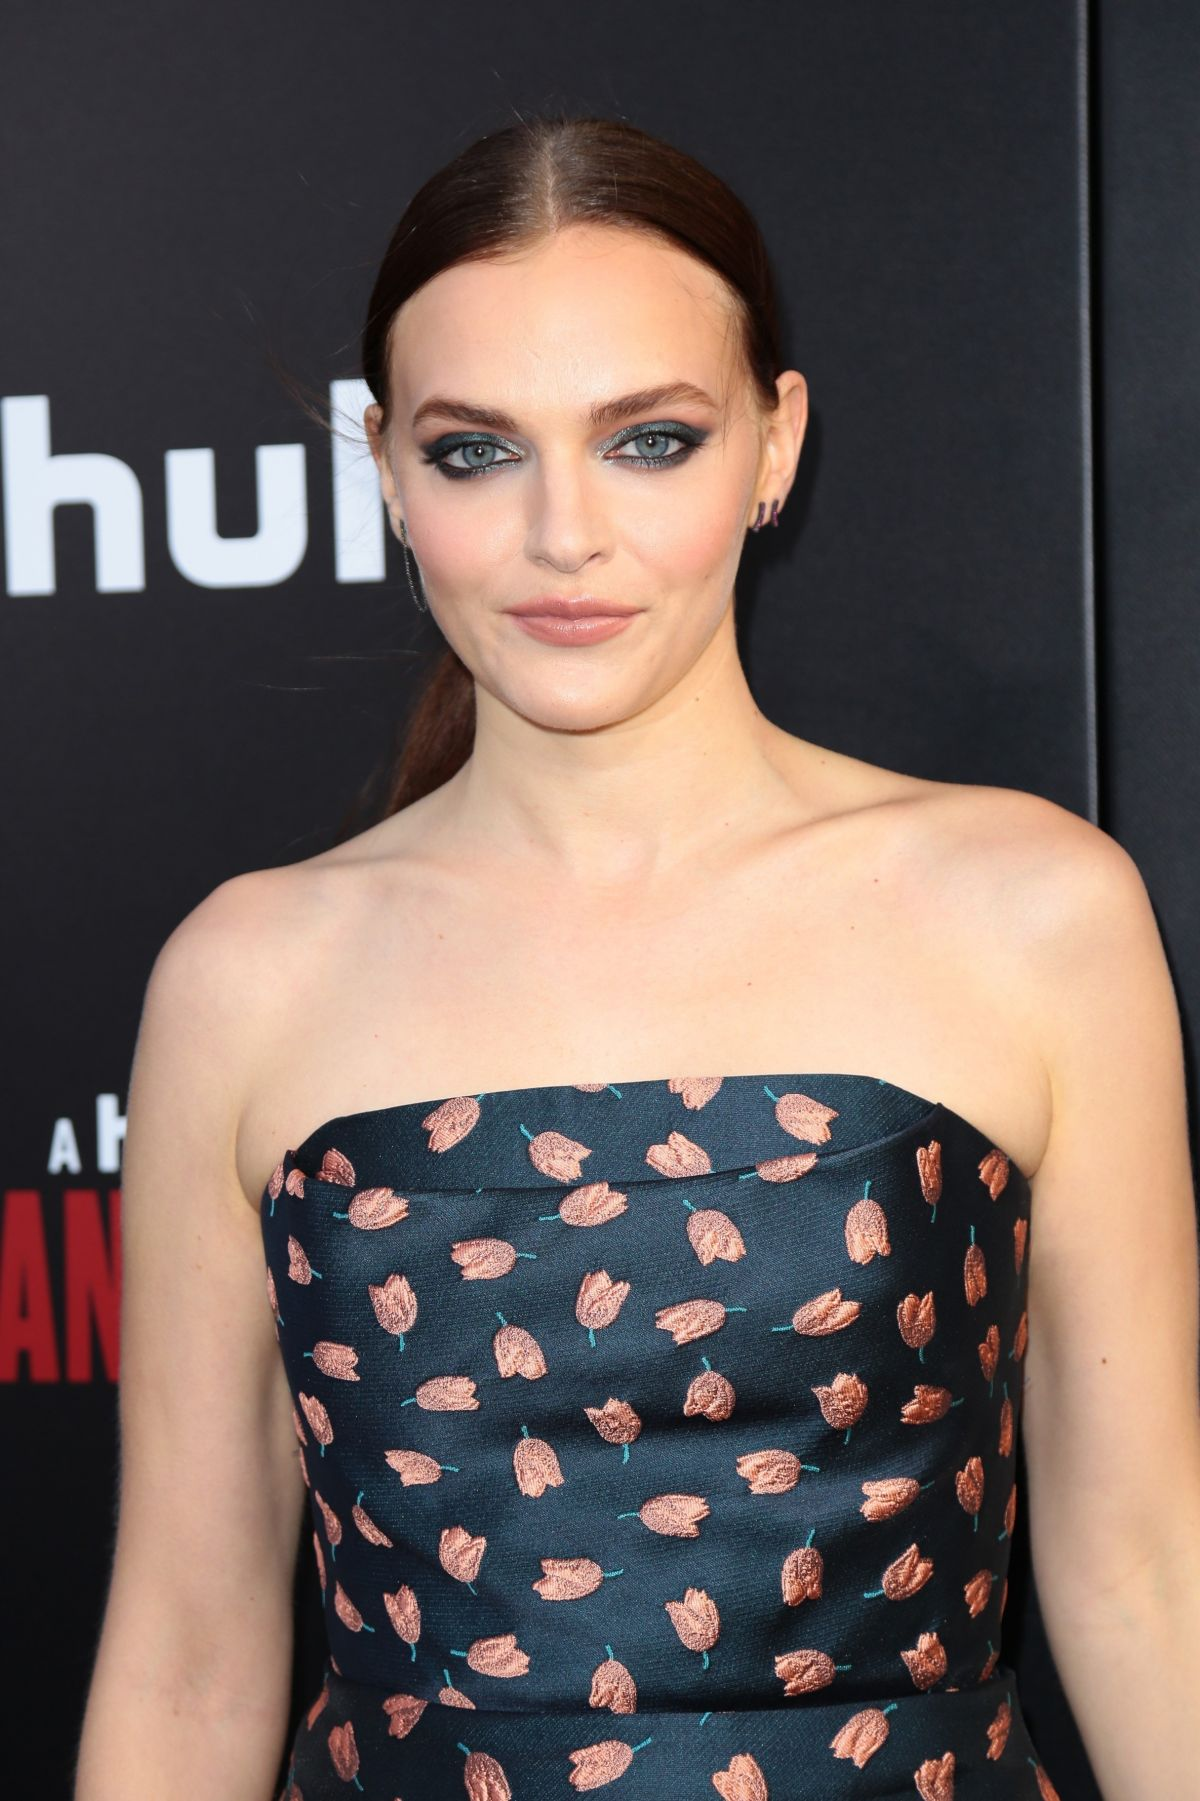 MADELINE BREWER at The Handmaid's Tale Premiere in Los Angeles 04/25/2017